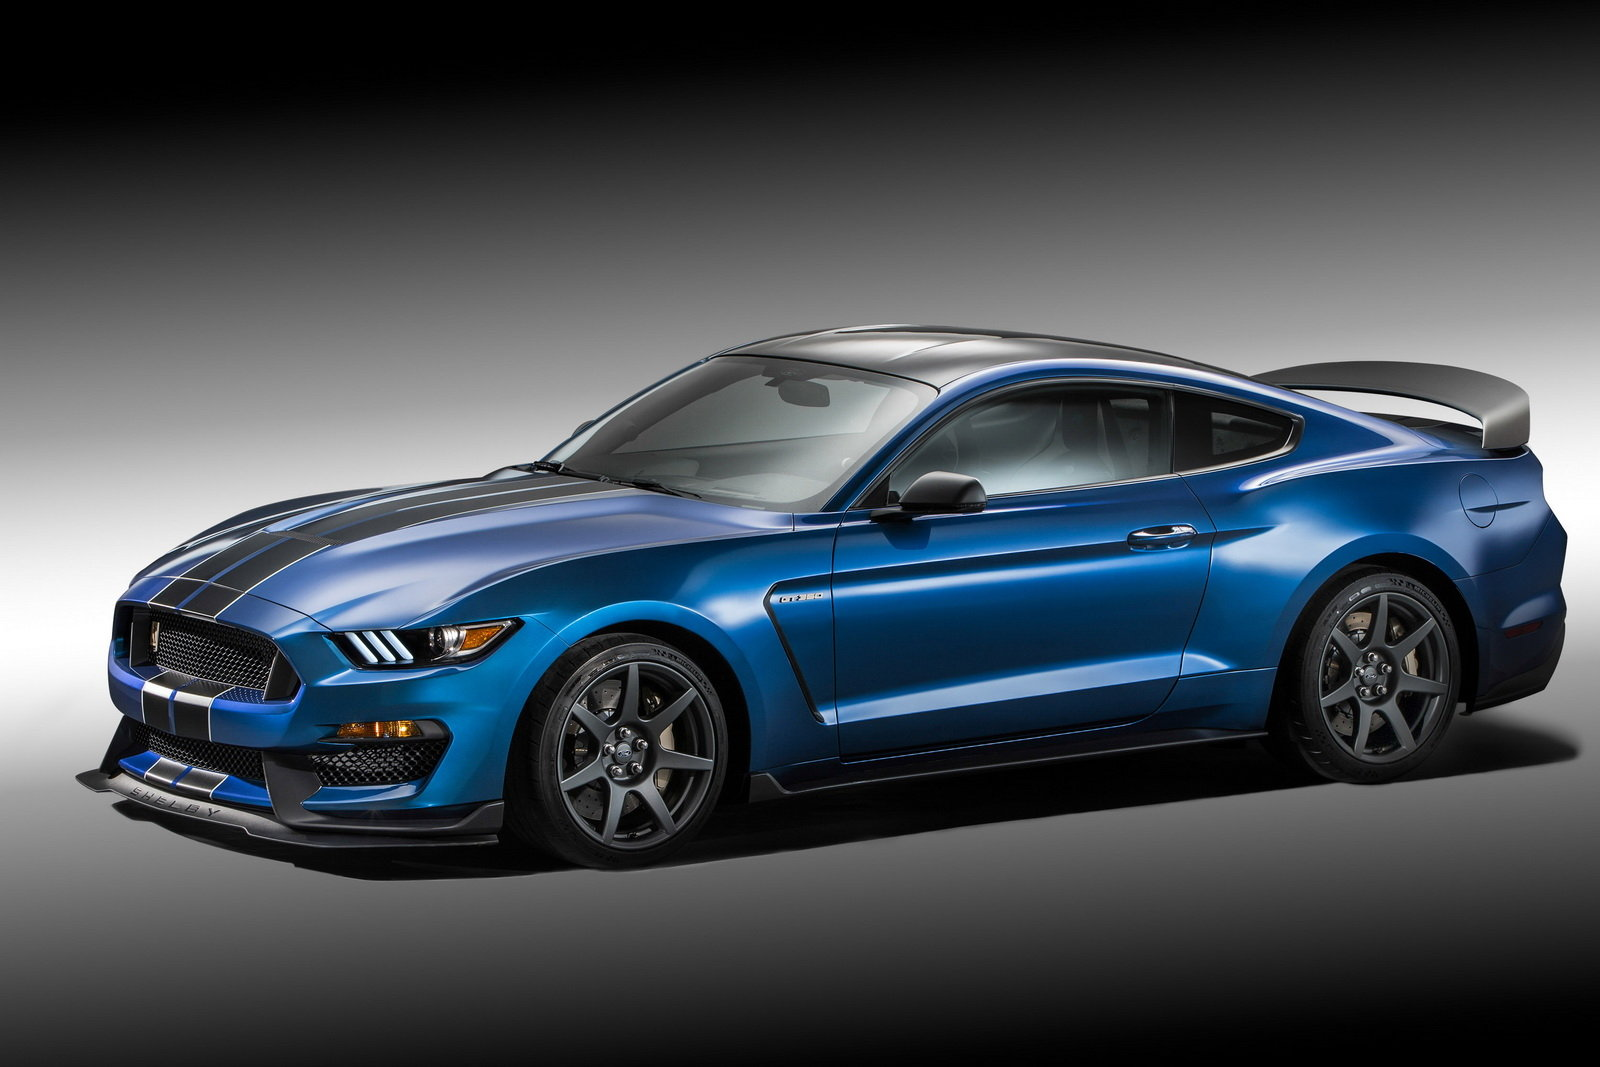 2016 Ford Mustang Shelby Gt350r Exterior Profile (Photo 27 of 47)